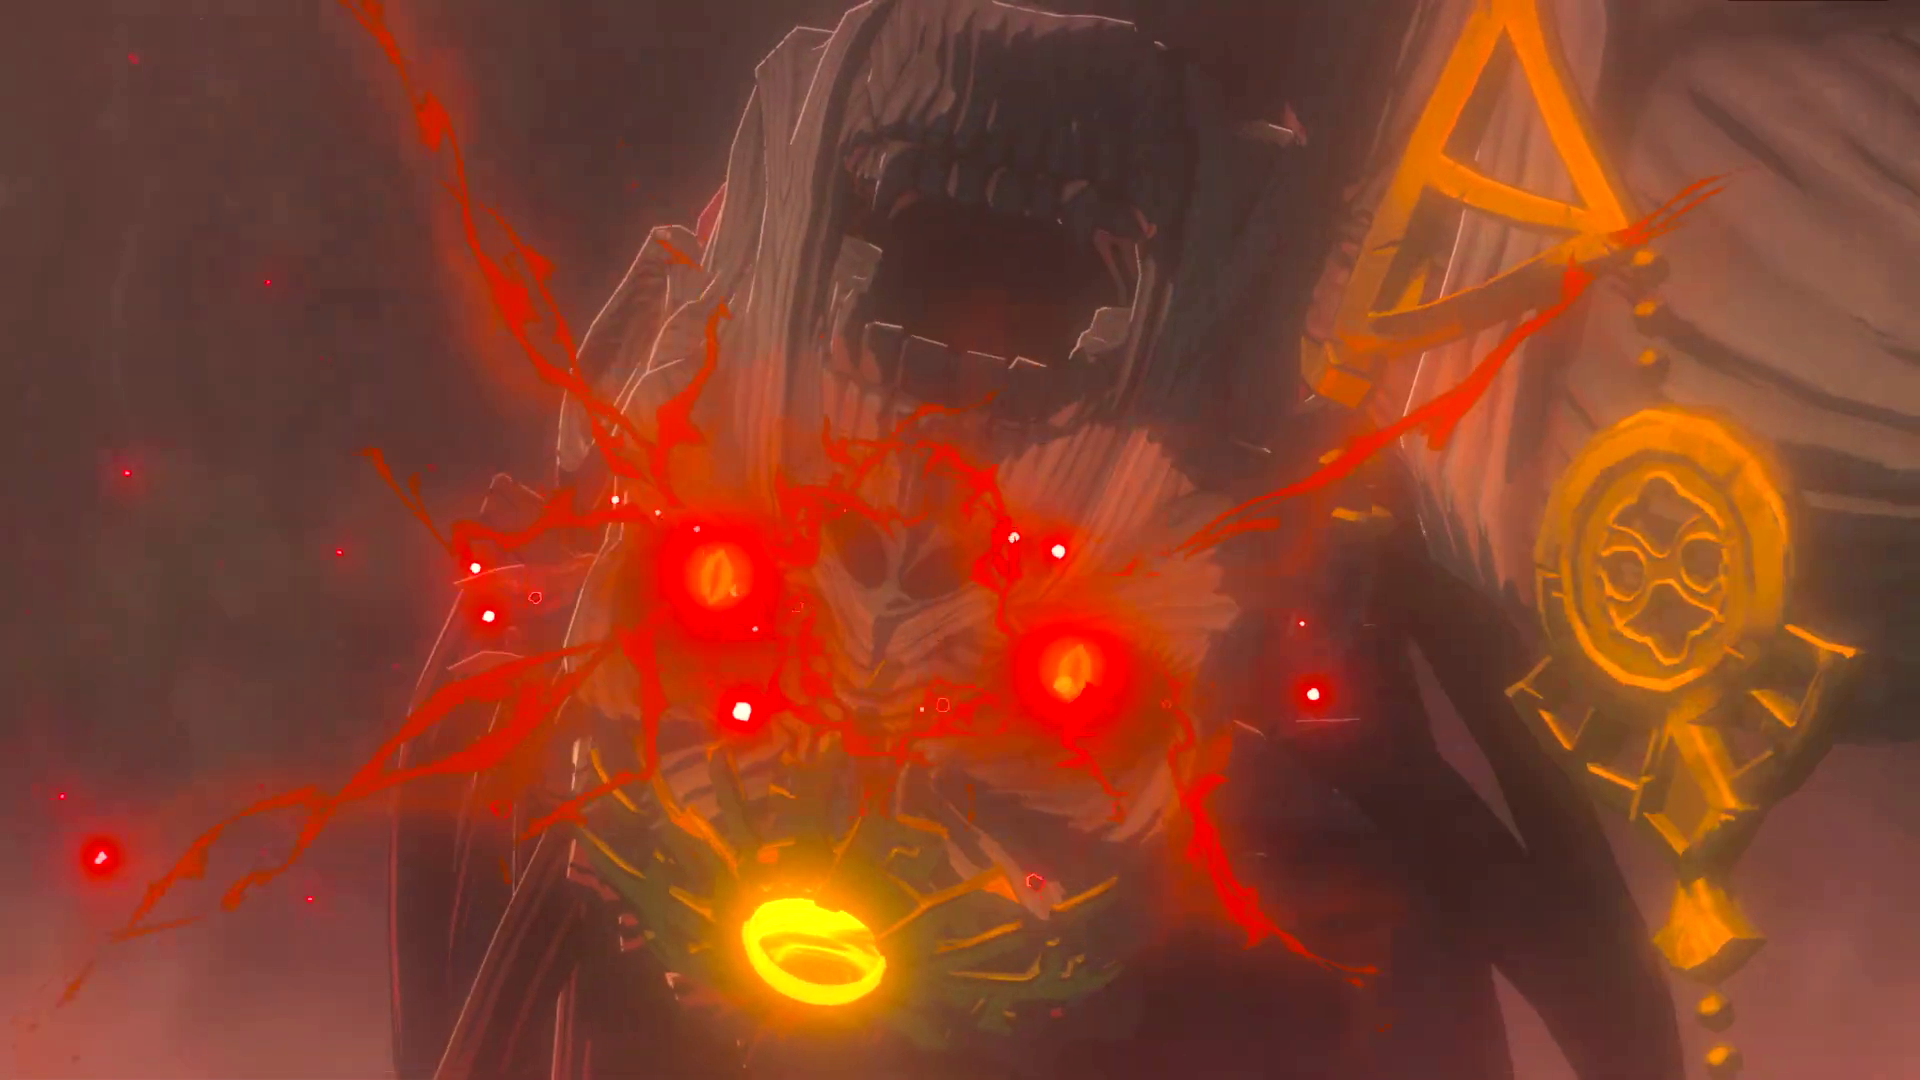 Breath Of The Wild 2 Twili Does The Botw Sequel Link To Twilight